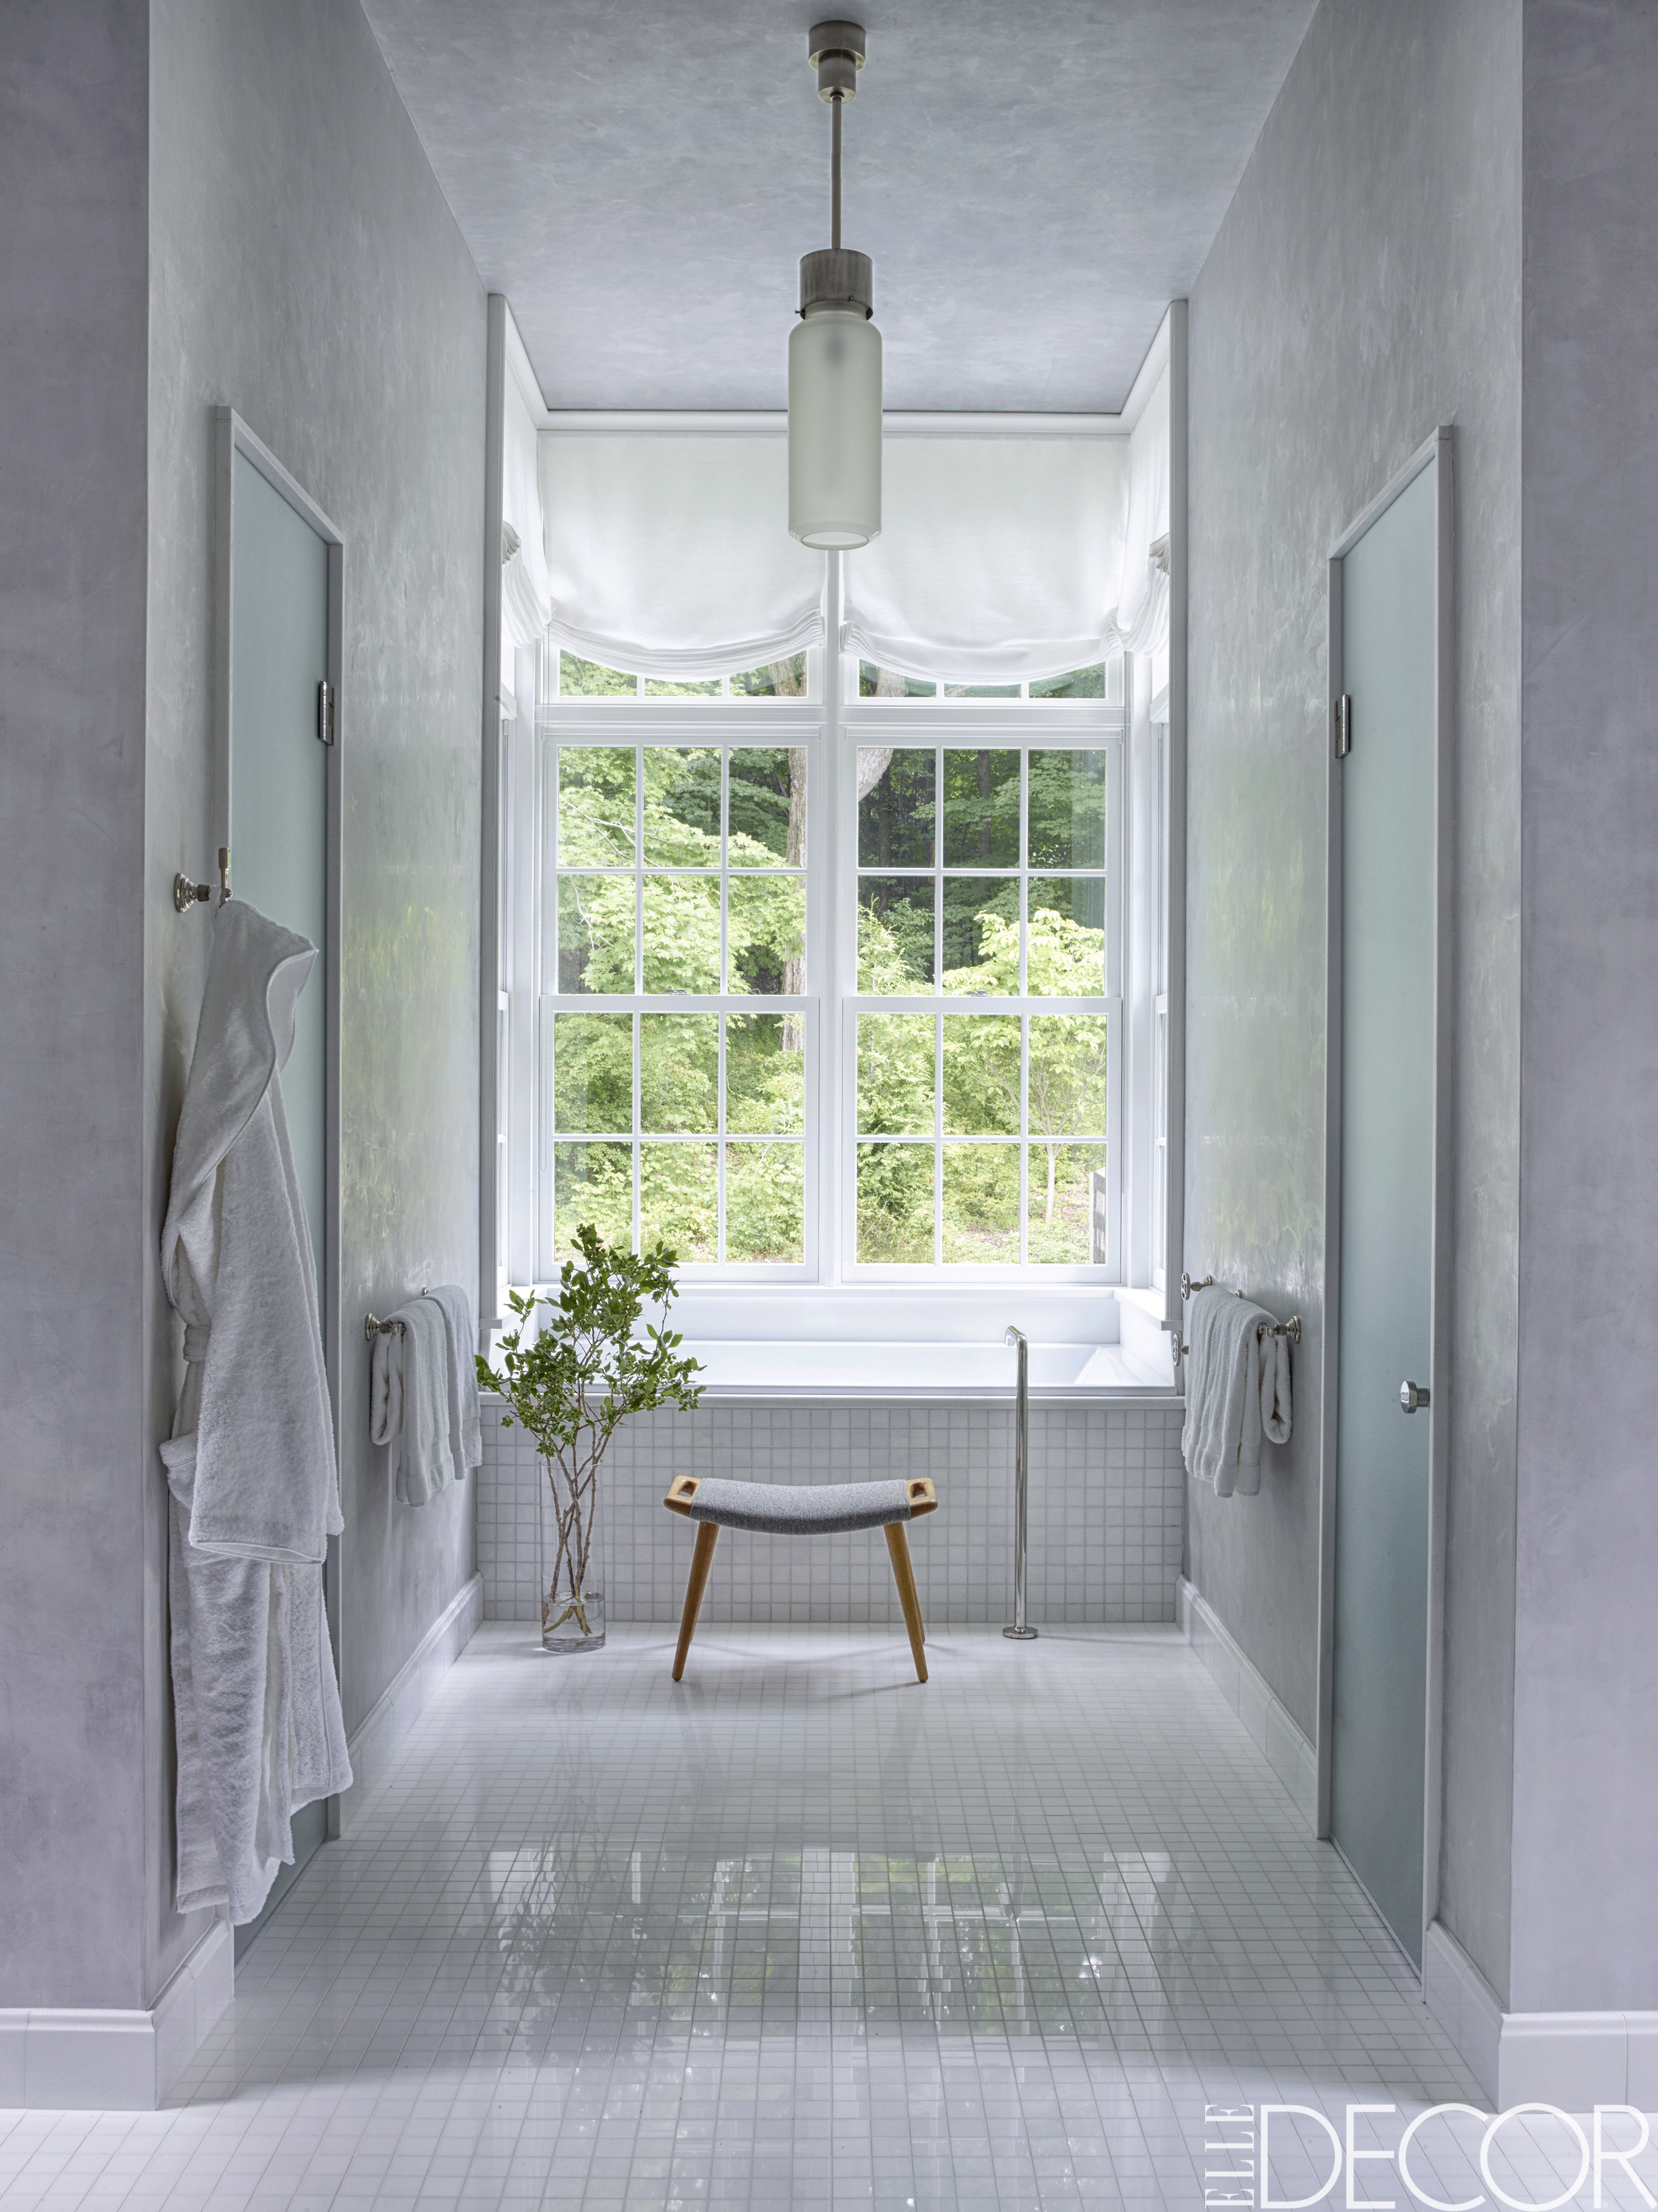 25 White Bathroom Design Ideas  Decorating Tips for All